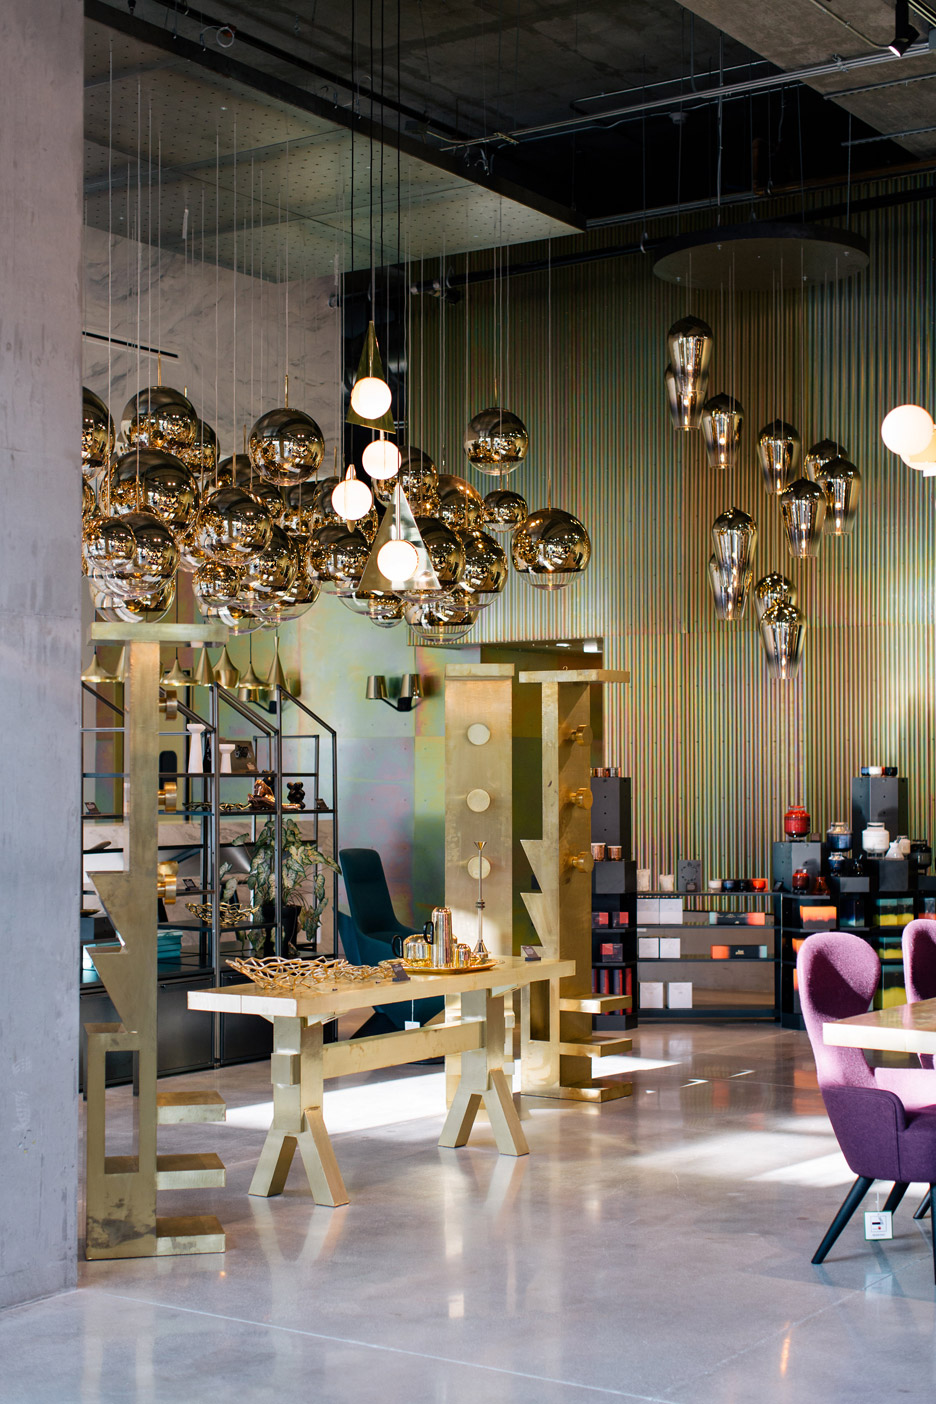 Tom Dixon's The Shop in LA